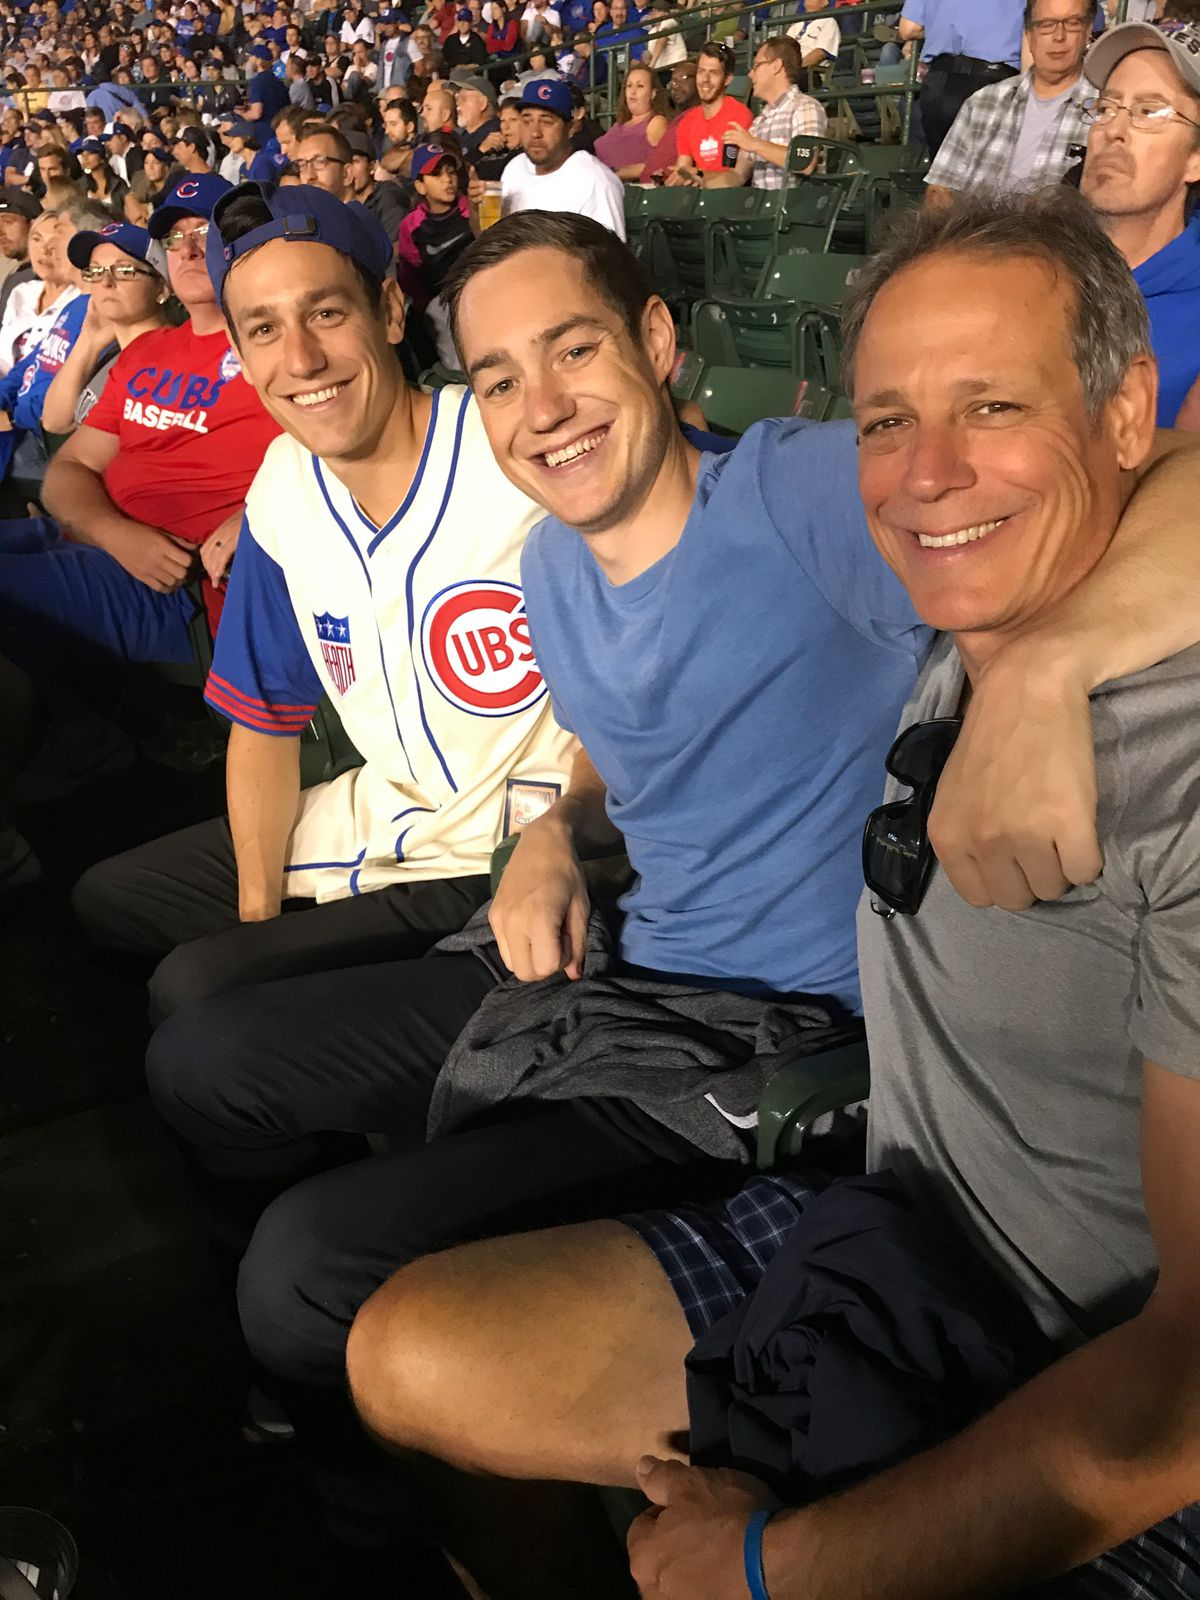 """John """"Jay"""" Loos (right) with his son at his left, at the Aug. 29 game.   Provided"""